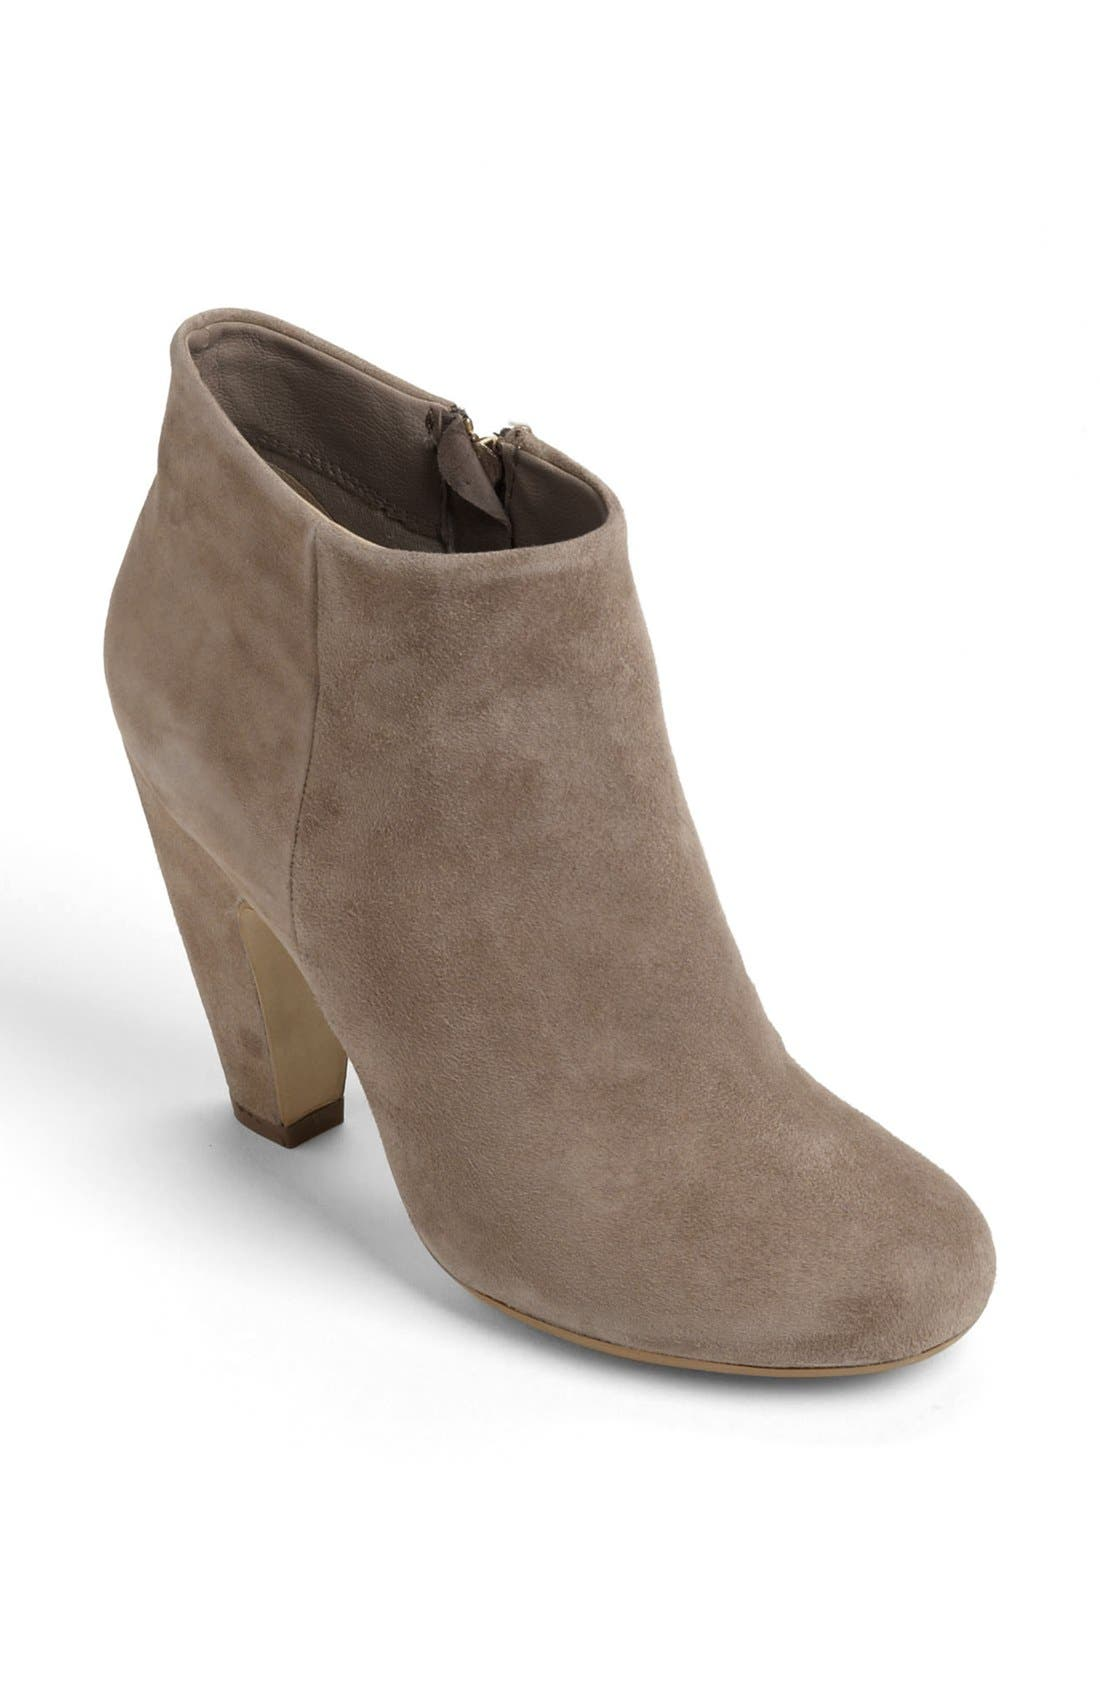 Alternate Image 1 Selected - Steve Madden 'Panelope' Bootie